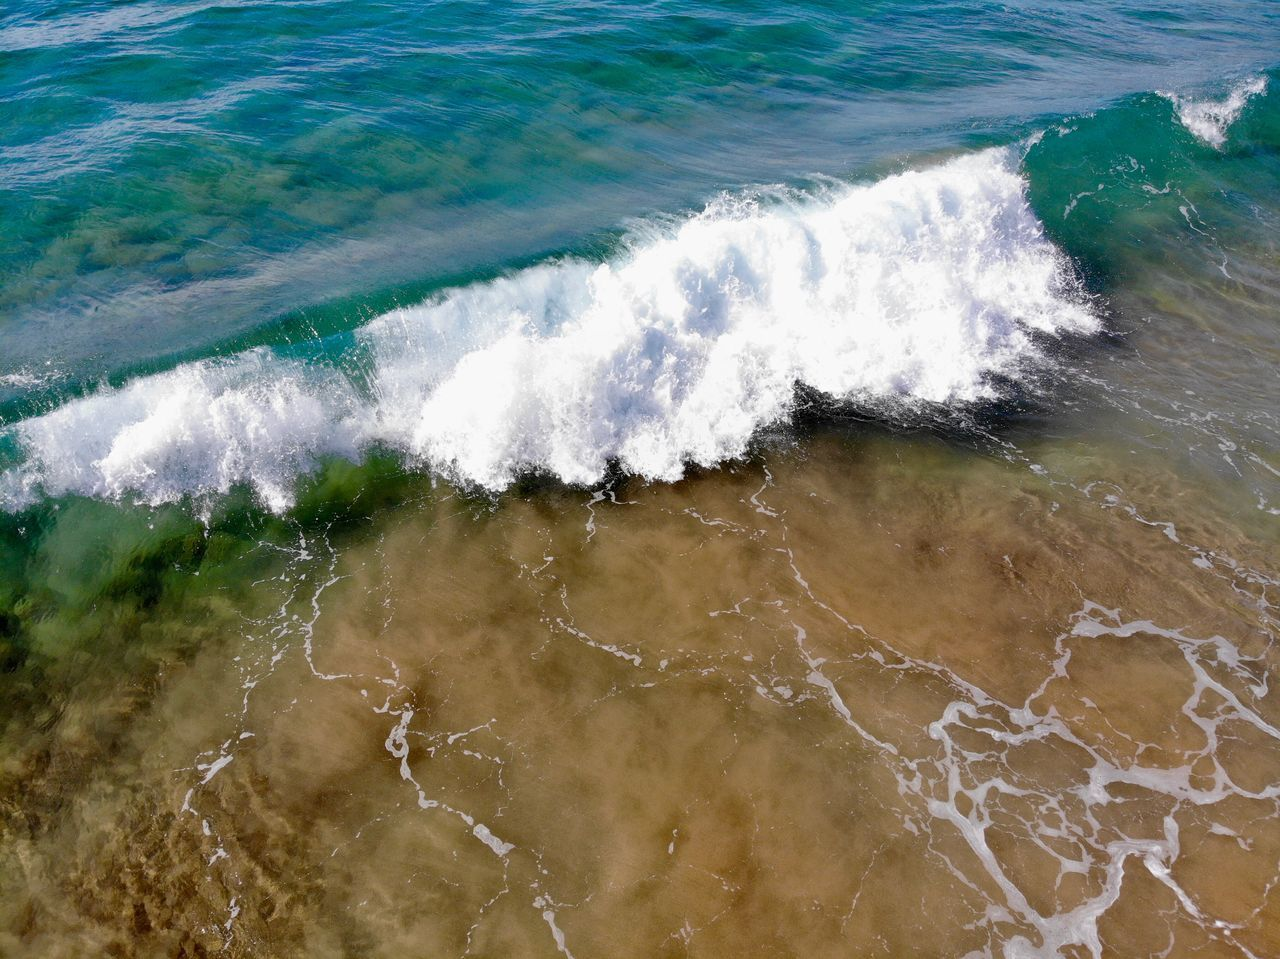 sea, motion, water, wave, sport, aquatic sport, surfing, beauty in nature, day, nature, beach, power in nature, splashing, outdoors, land, waterfront, rushing, scenics - nature, breaking, hitting, flowing water